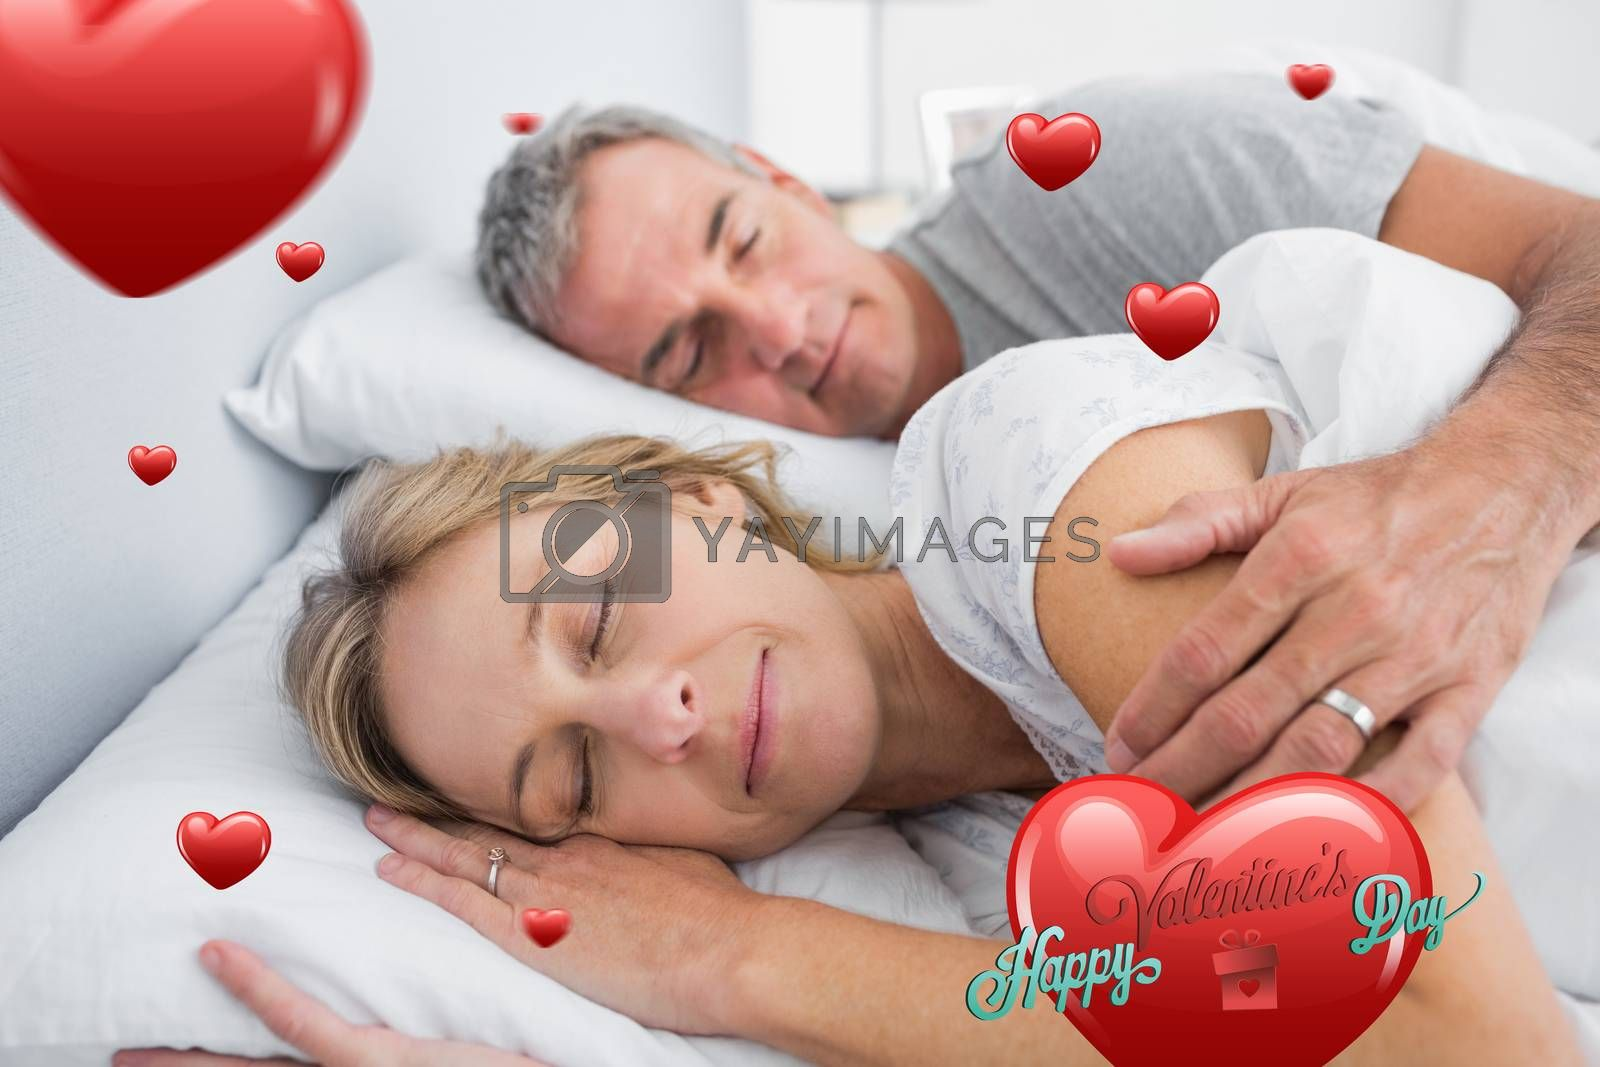 Couple sleeping and spooning in bed against happy valentines day